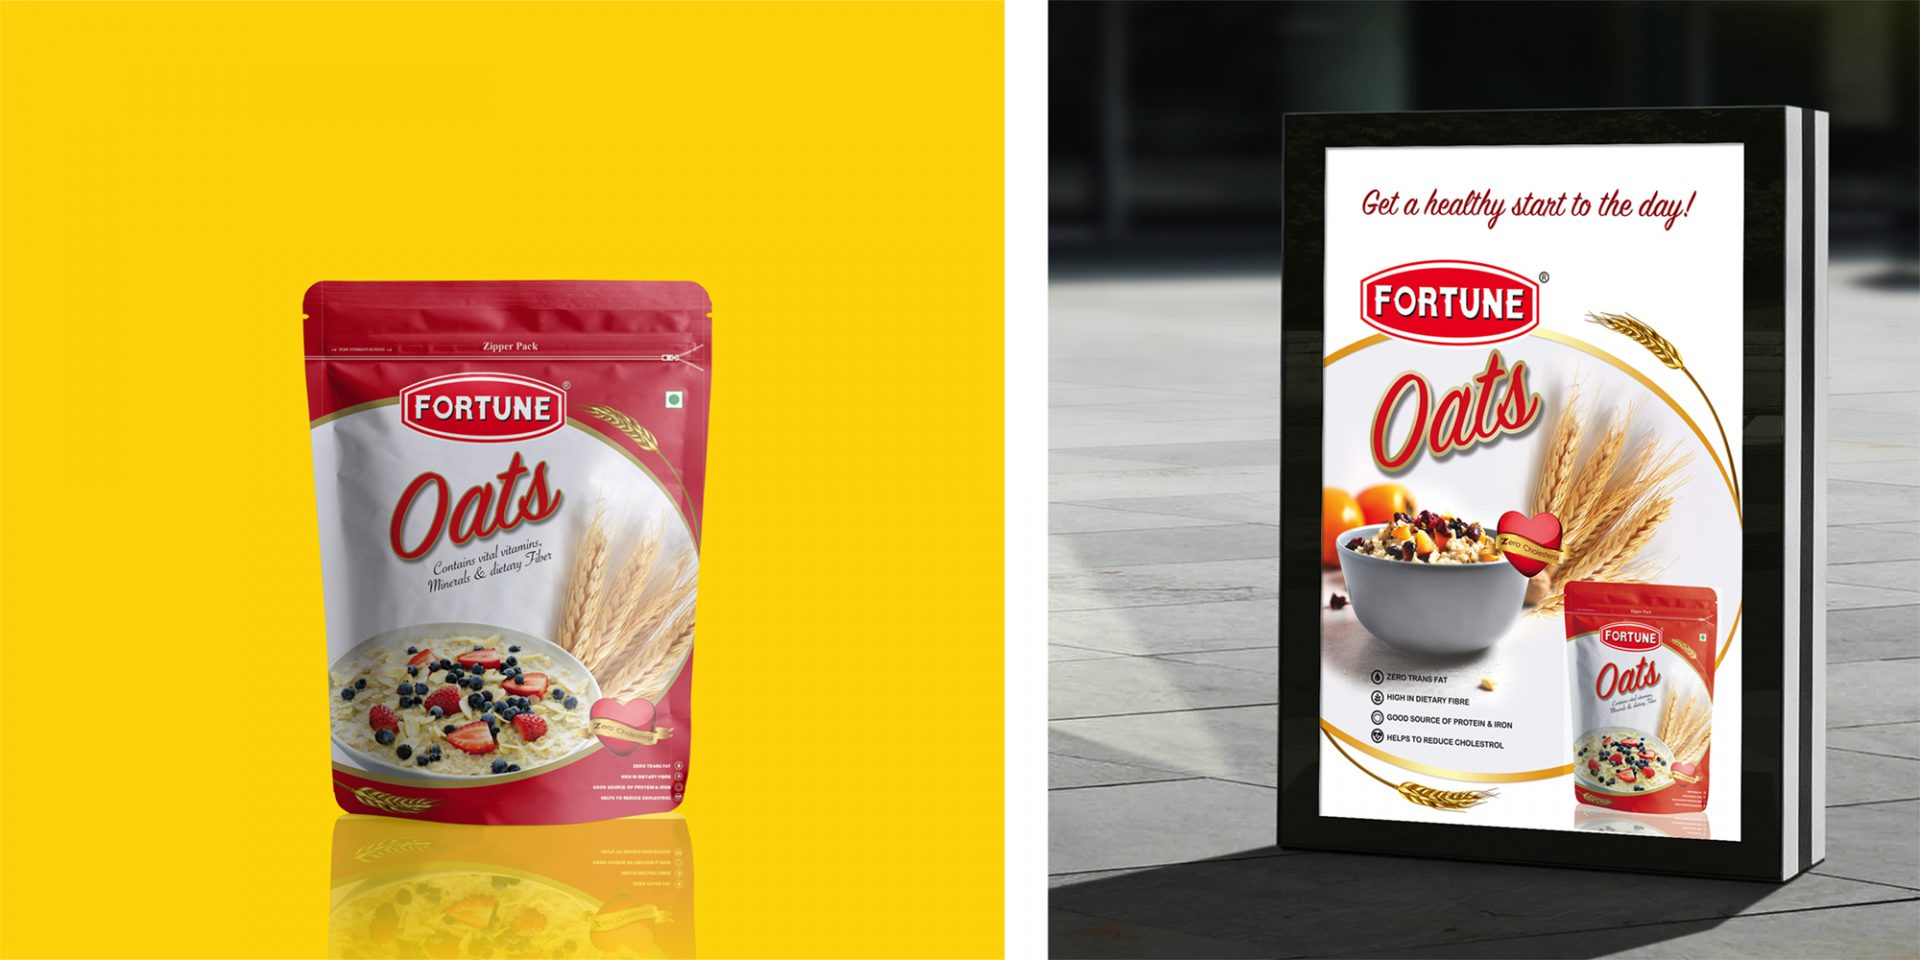 Fortune Oats Packaging/Ads Design